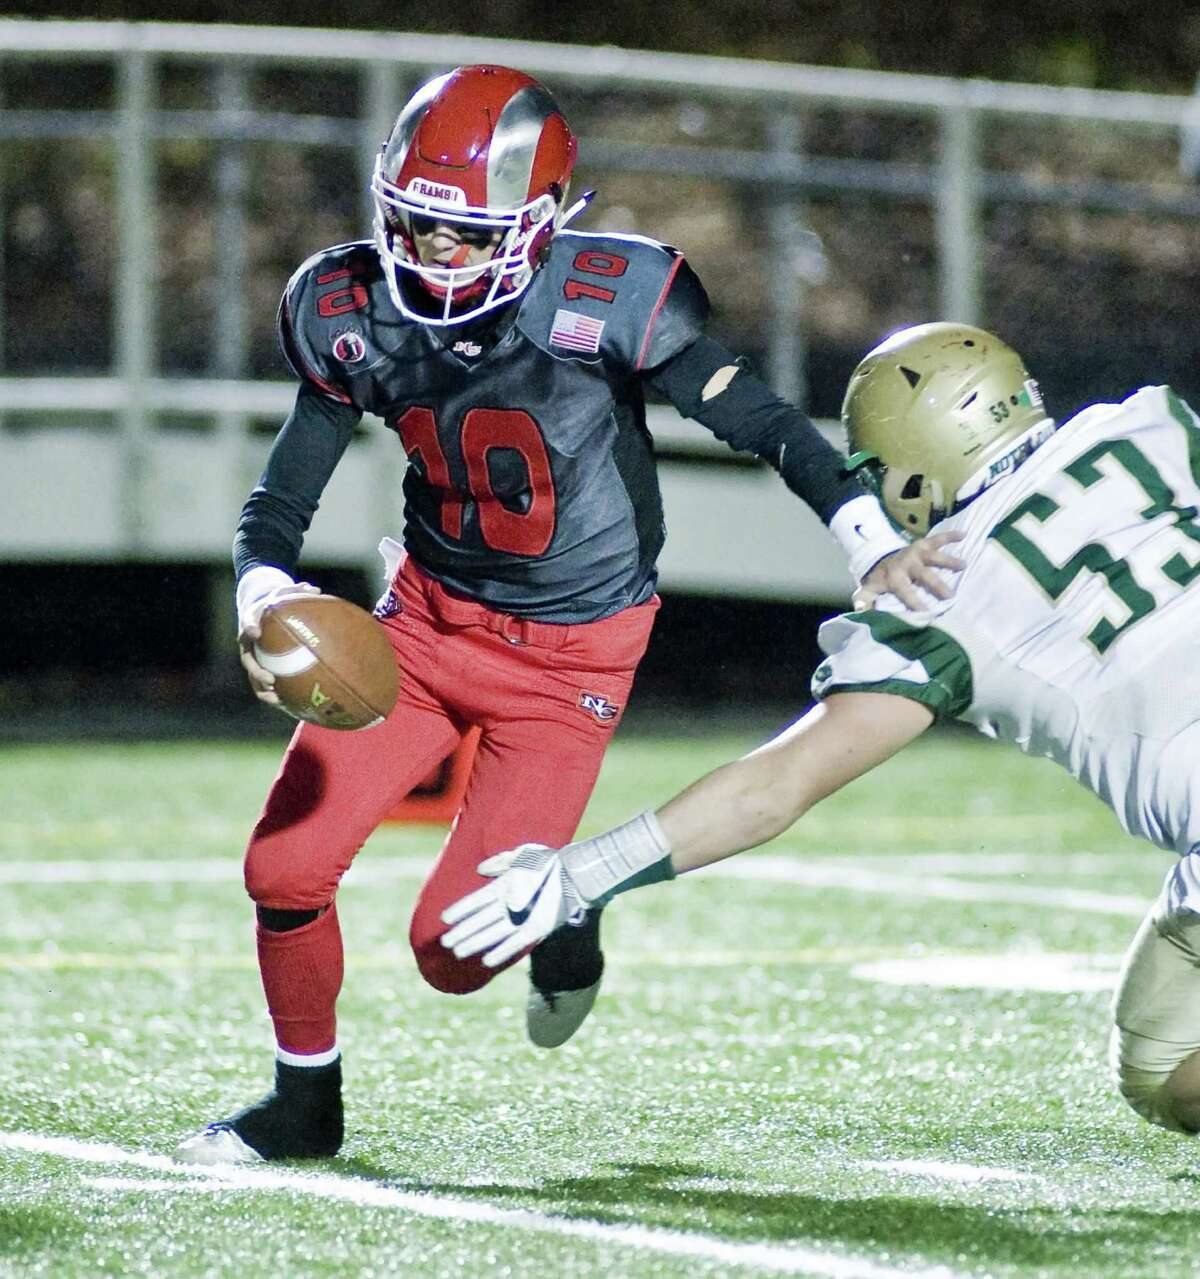 New Canaan High School quarterback Drew Pyne moves out of the reach of Notre Dame-West Haven High School's Justin Keish in the Class L football semifinals at New Canaan. Monday, Dec. 5, 2016